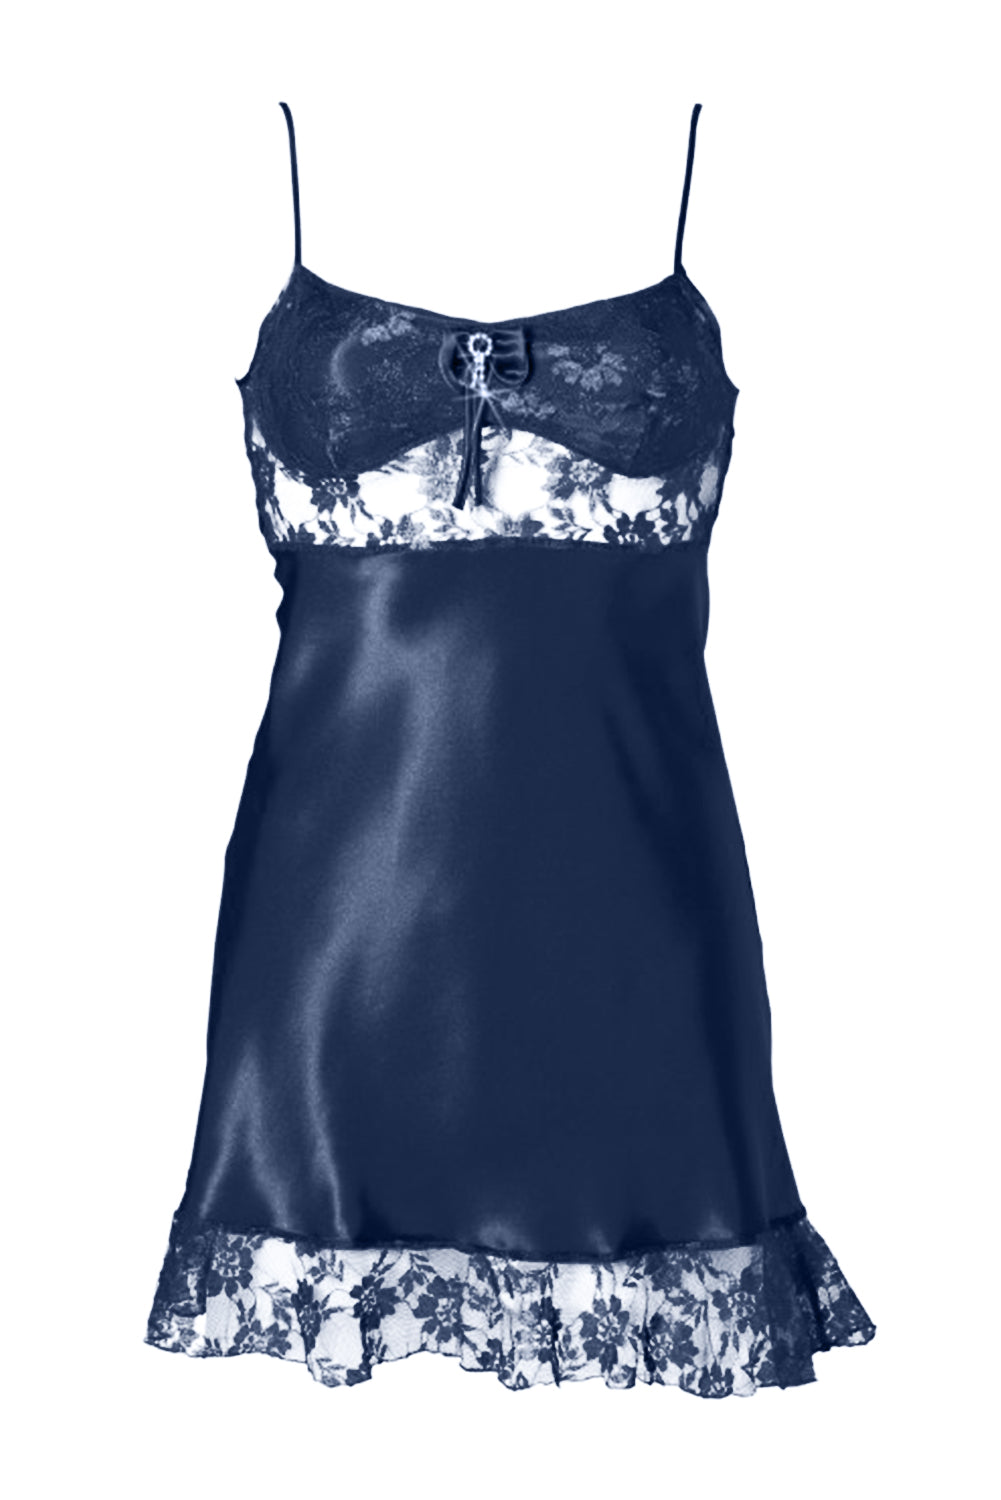 Blue Satin Lace Negligee Babydoll